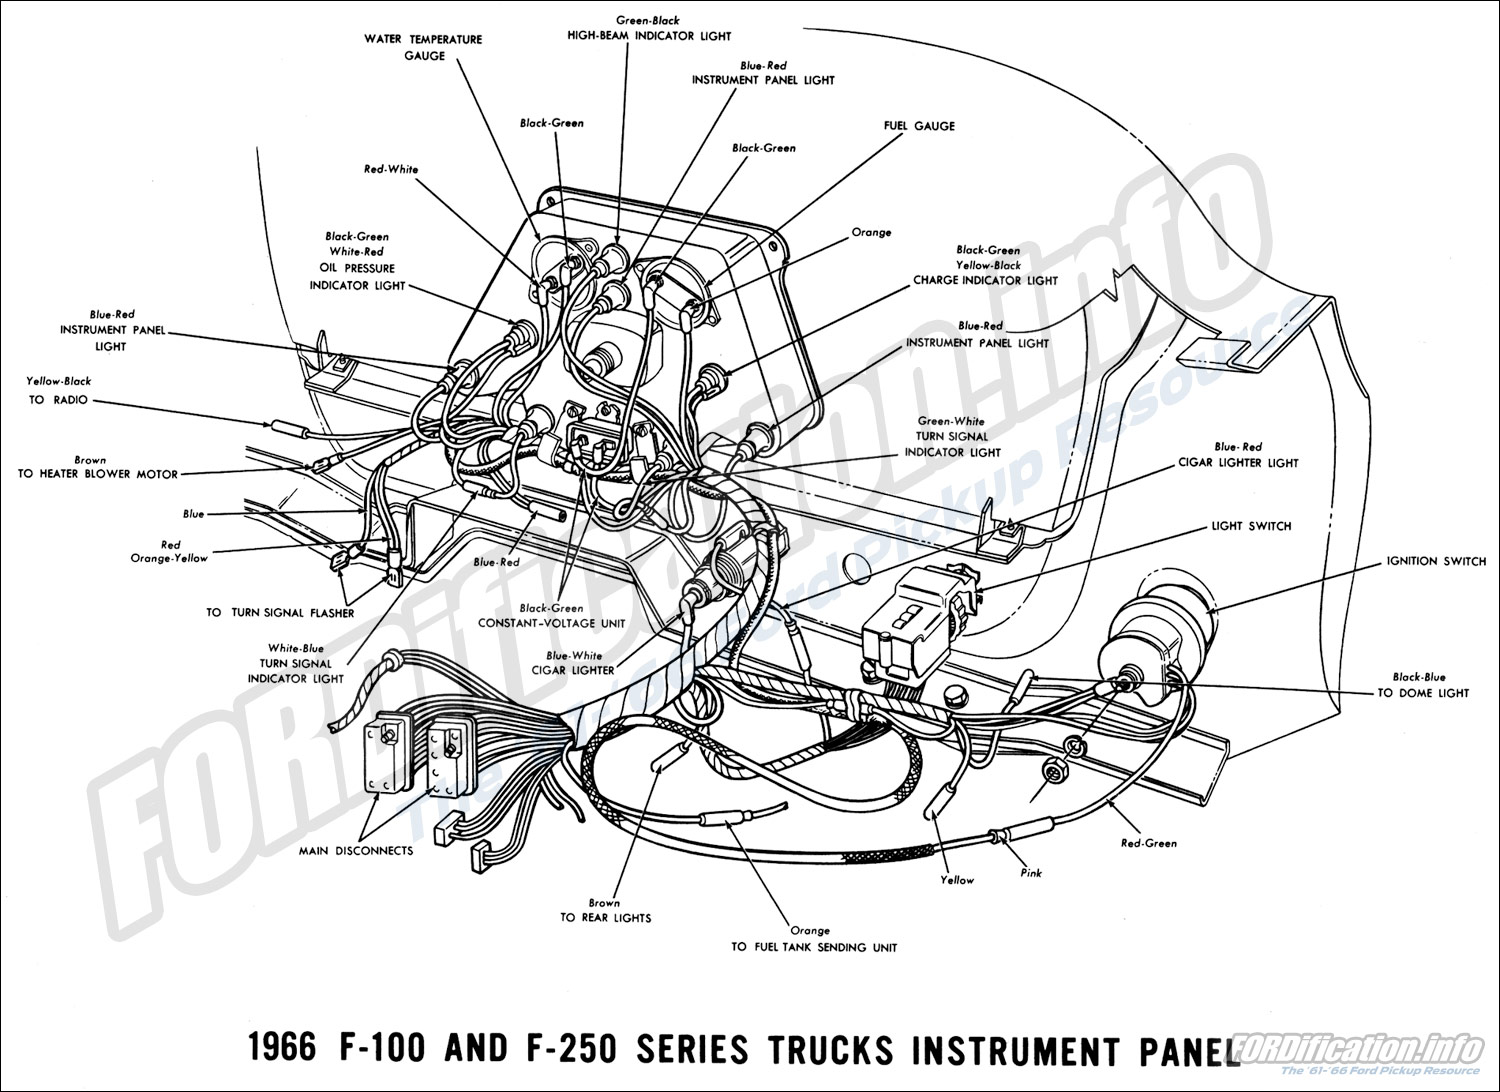 wiring diagram for 1966 ford f100 1966 ford truck wiring diagrams - fordification.info - the ... wiring diagram for 1971 ford f100